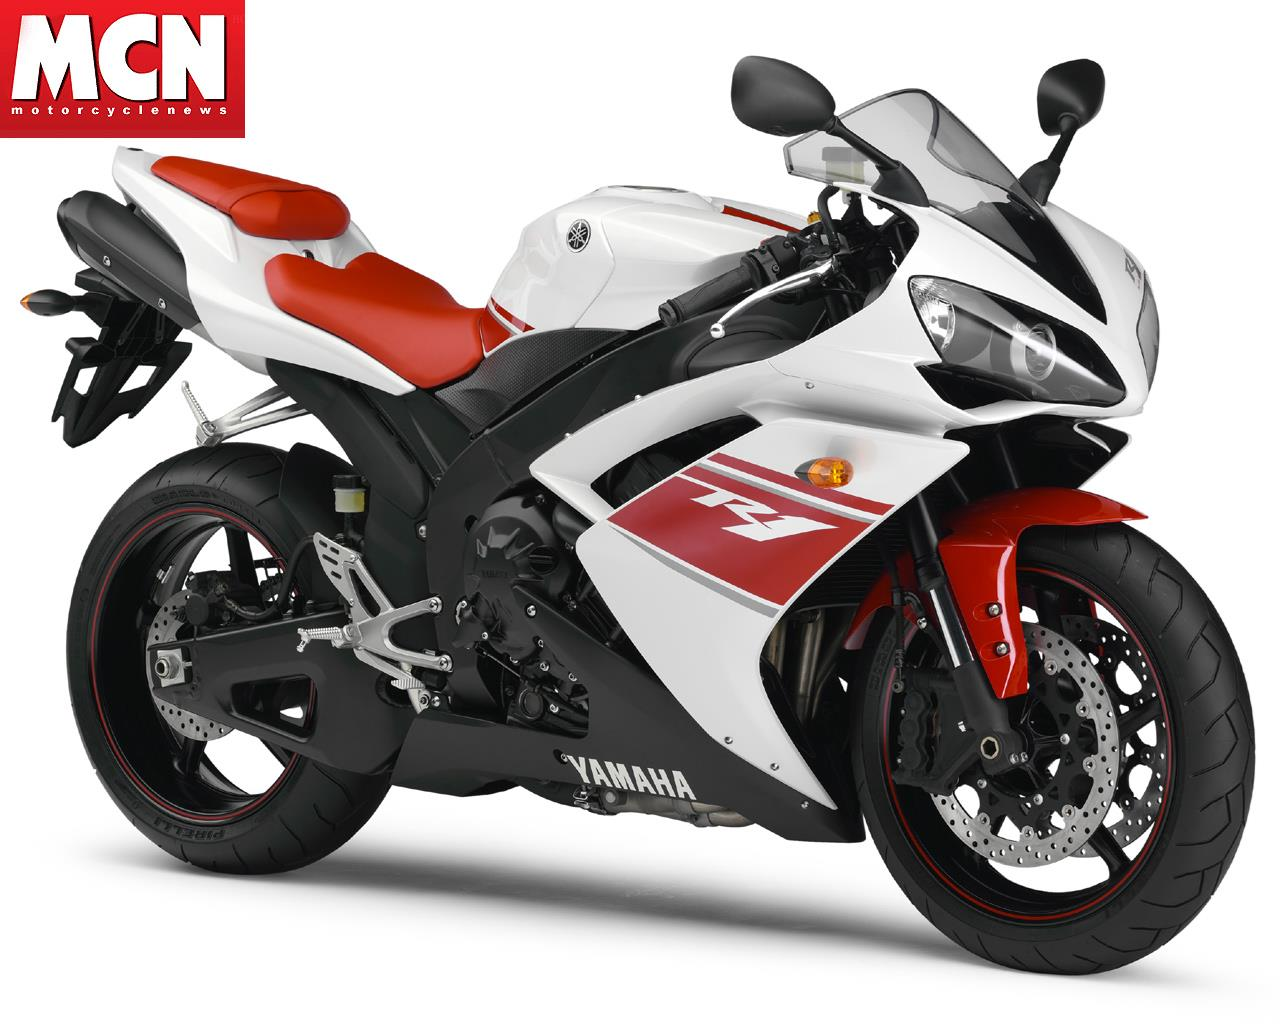 Yamaha r15 in blazing red colour - car and bike blog